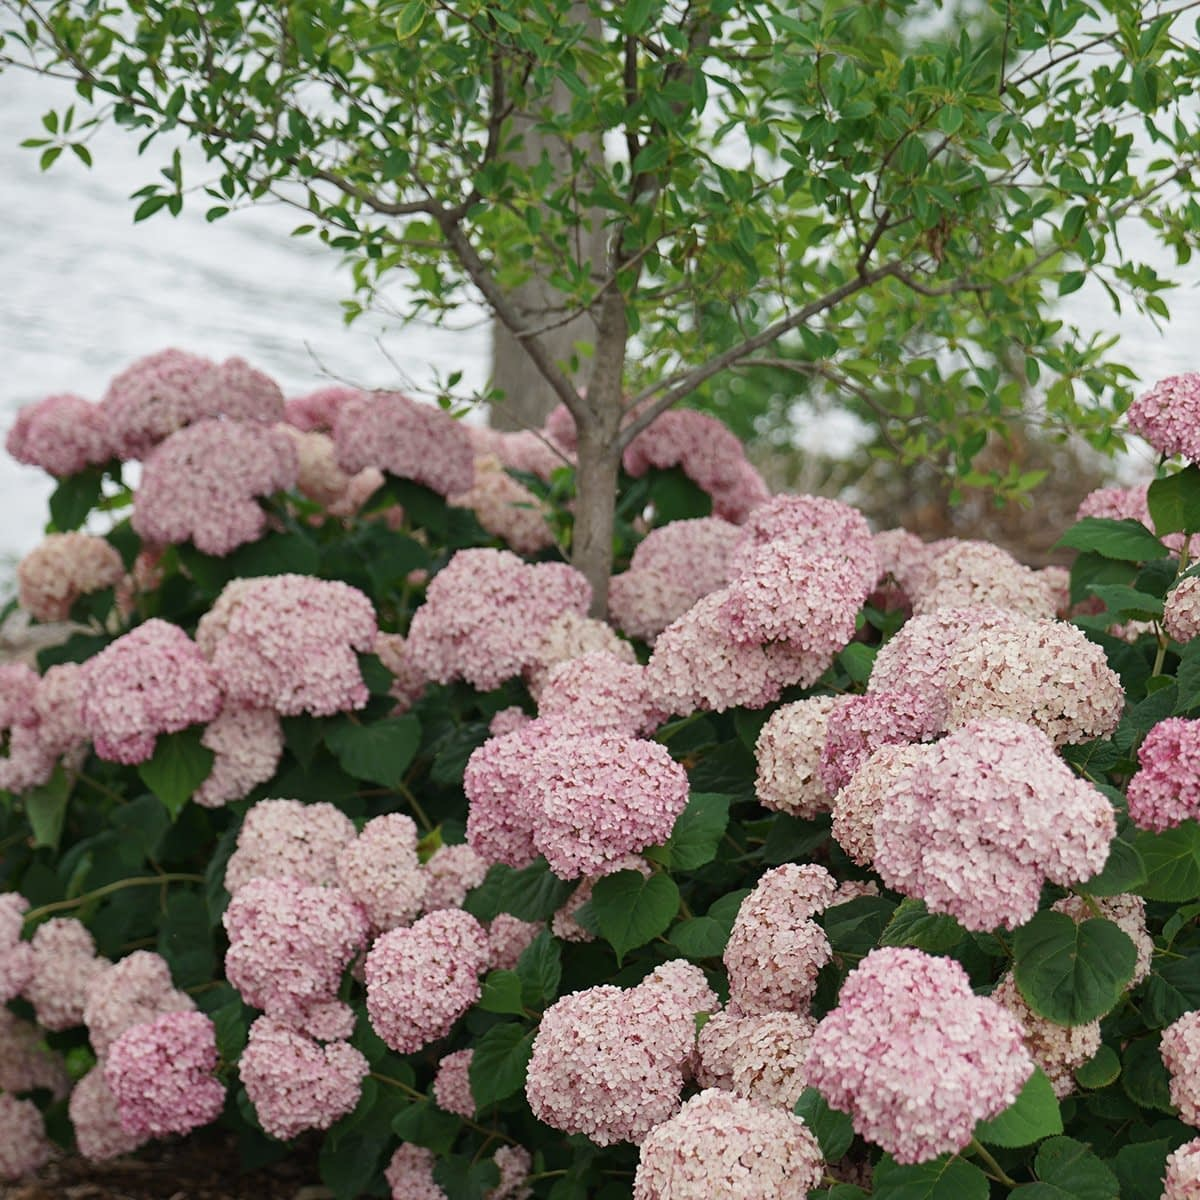 Thin tree trunk surrounded by light pink hydrangea blooms